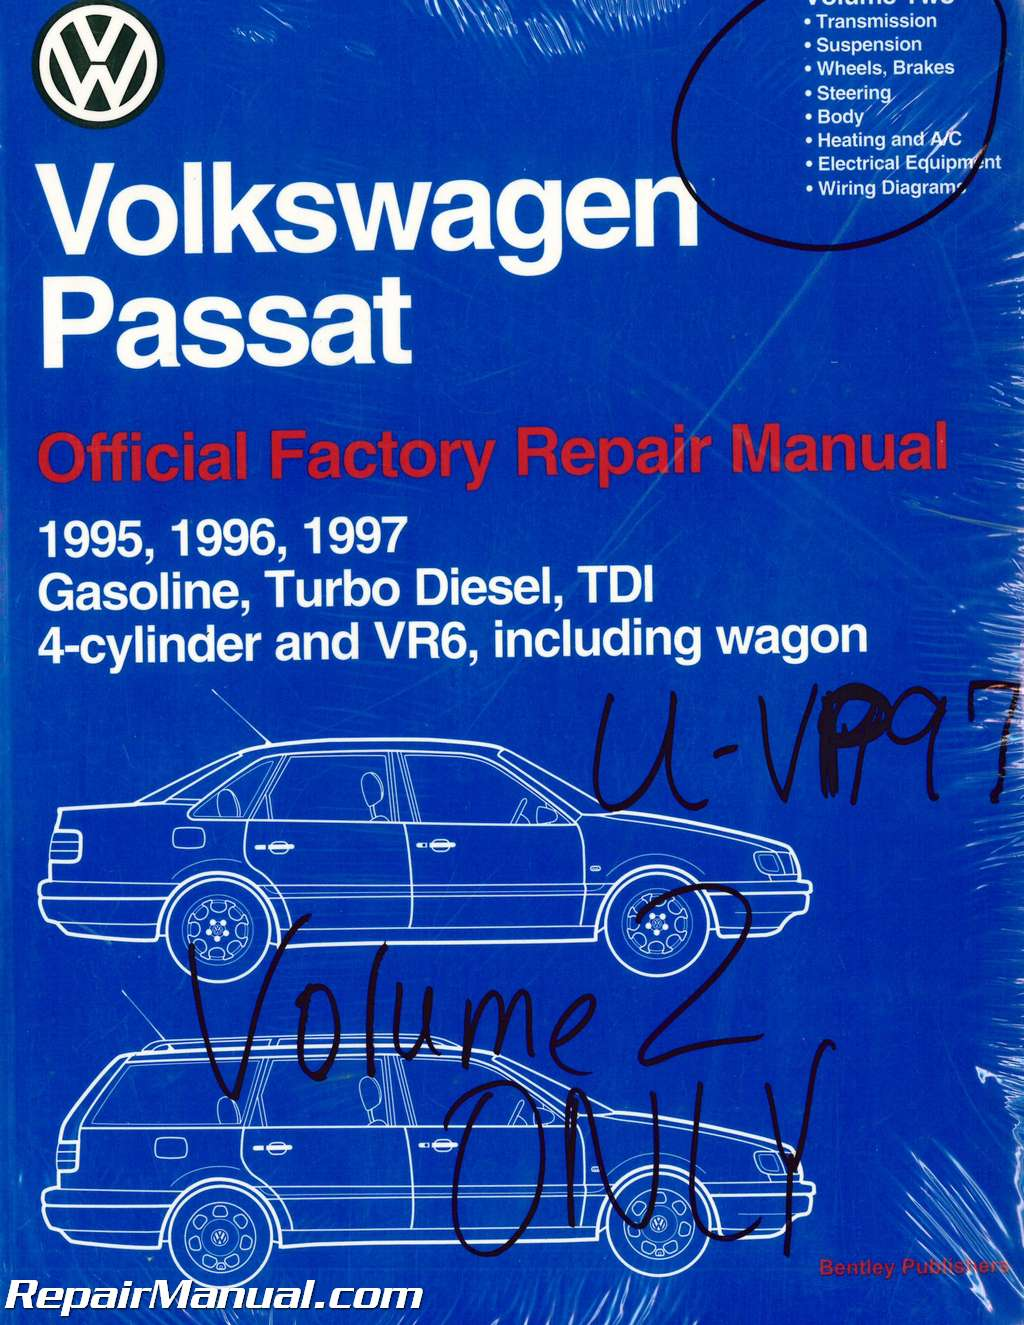 Vw Passat01n Transmission Repair Manual Auto Electrical Wiring Diagram T104p3 Volume 2 Only Volkswagen Passat B4 1995